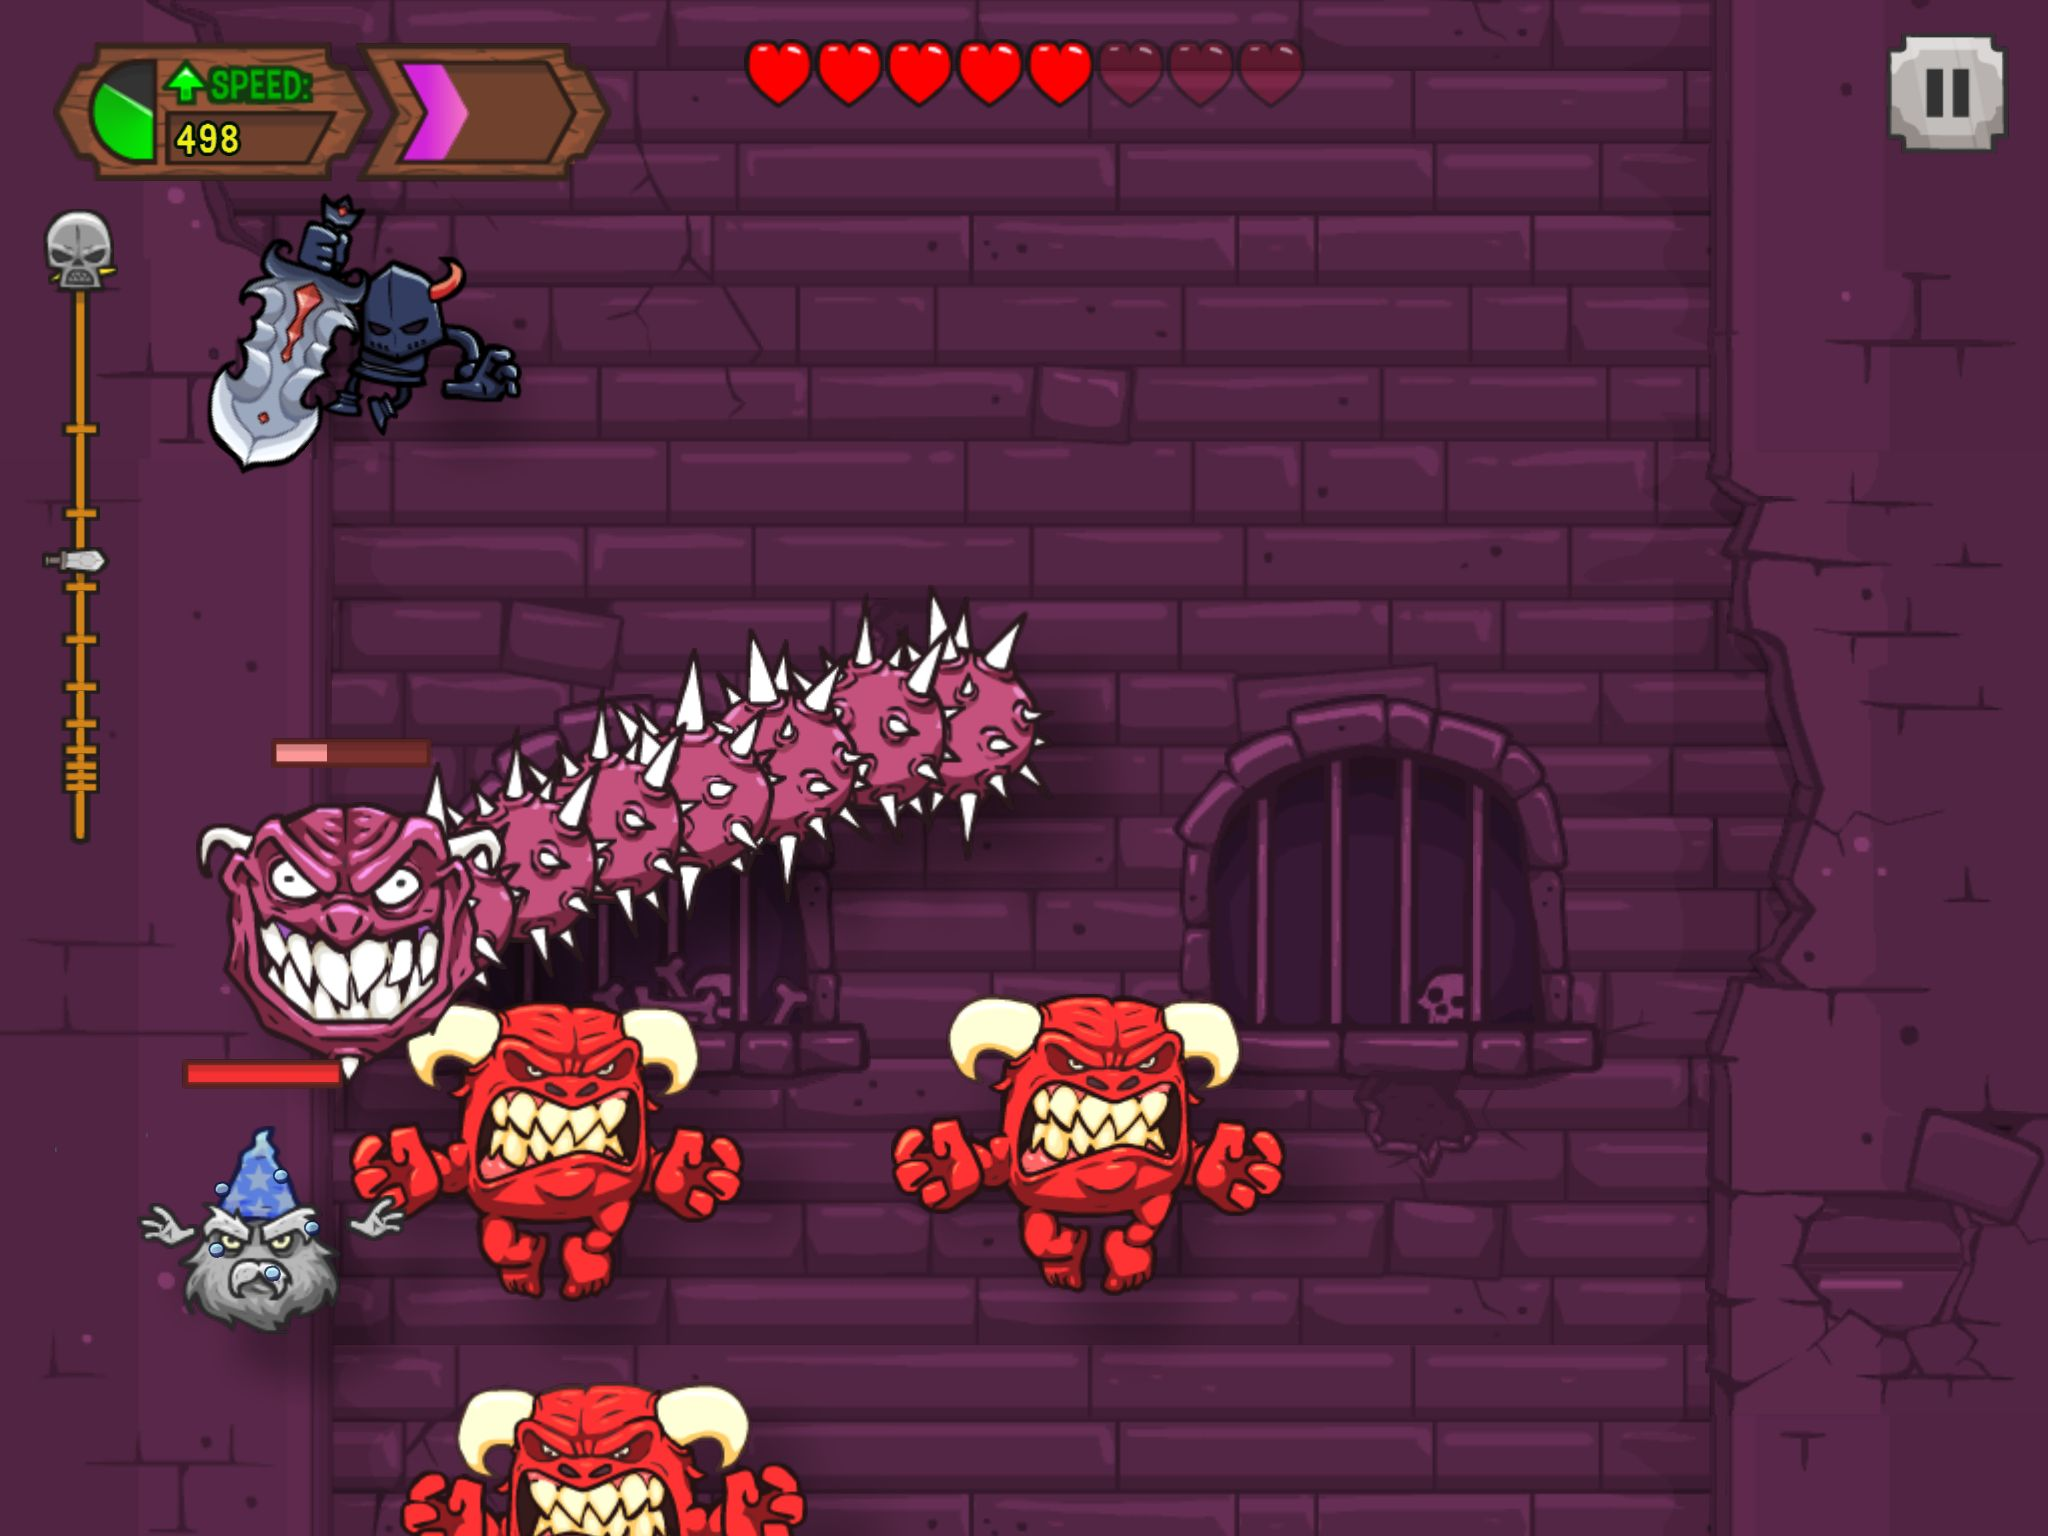 Knightmare Tower image 3 of 4 - Knightmare Tower Android, iPhone ...